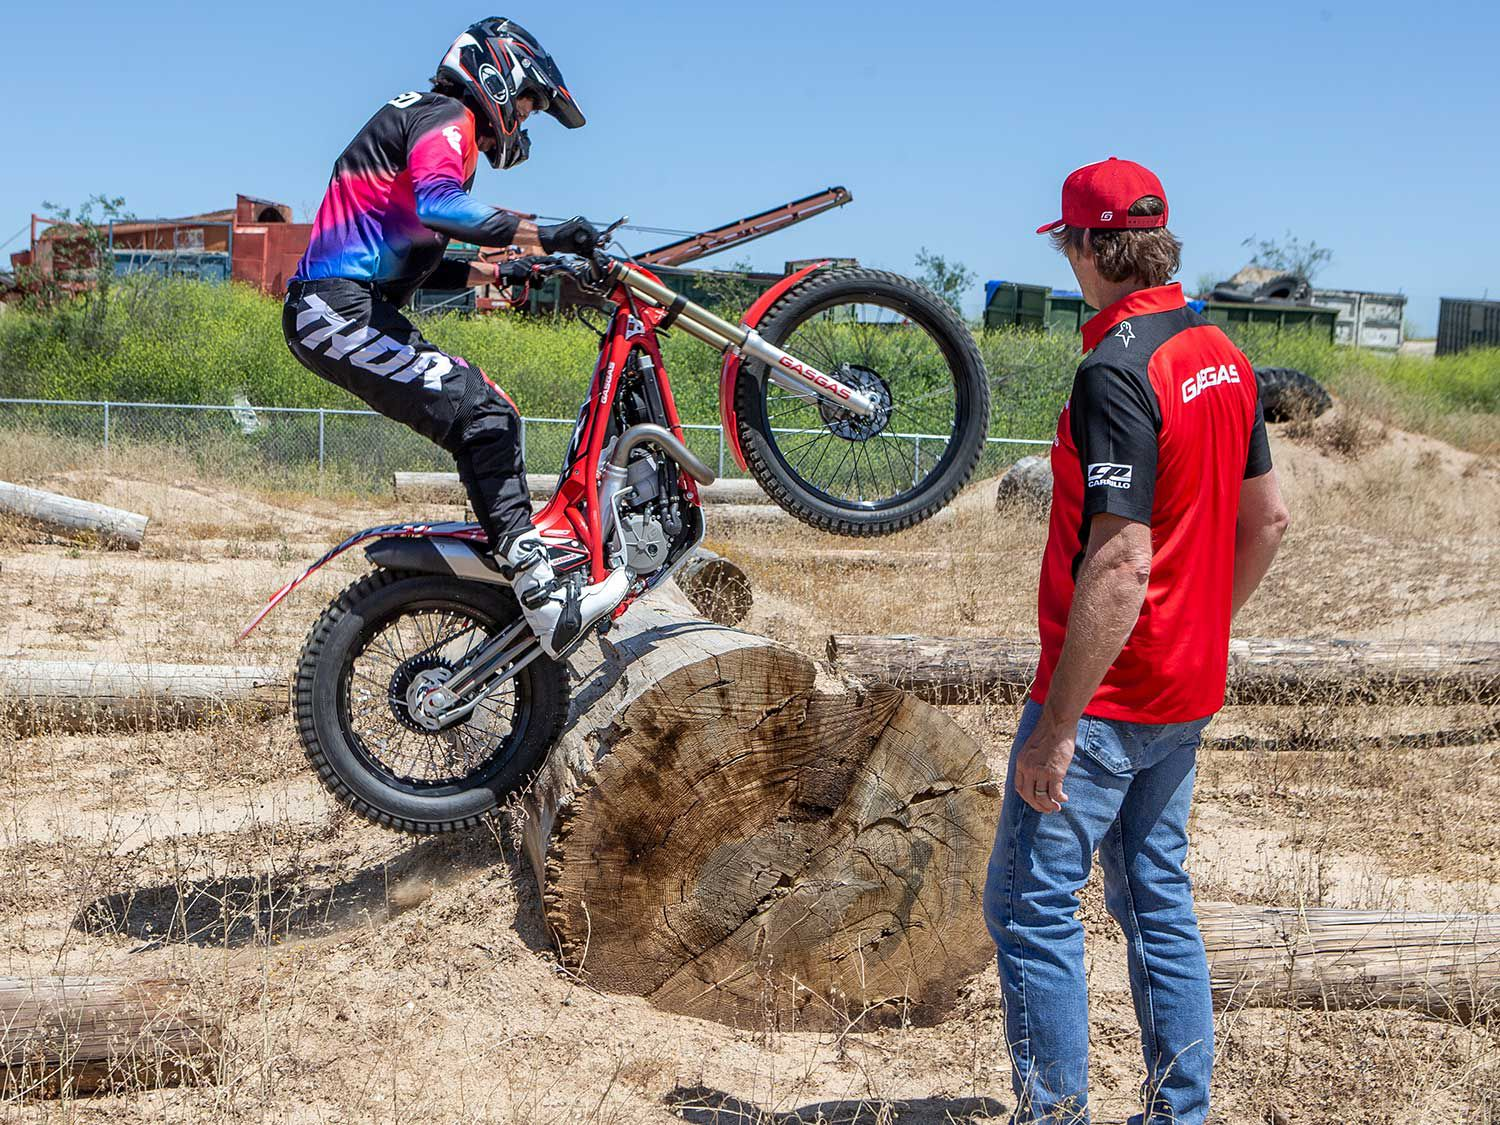 Momentum, balance, and patience are all key techniques to trials motorcycle riding as multitime AMA trials champ Geoff Aaron explains.